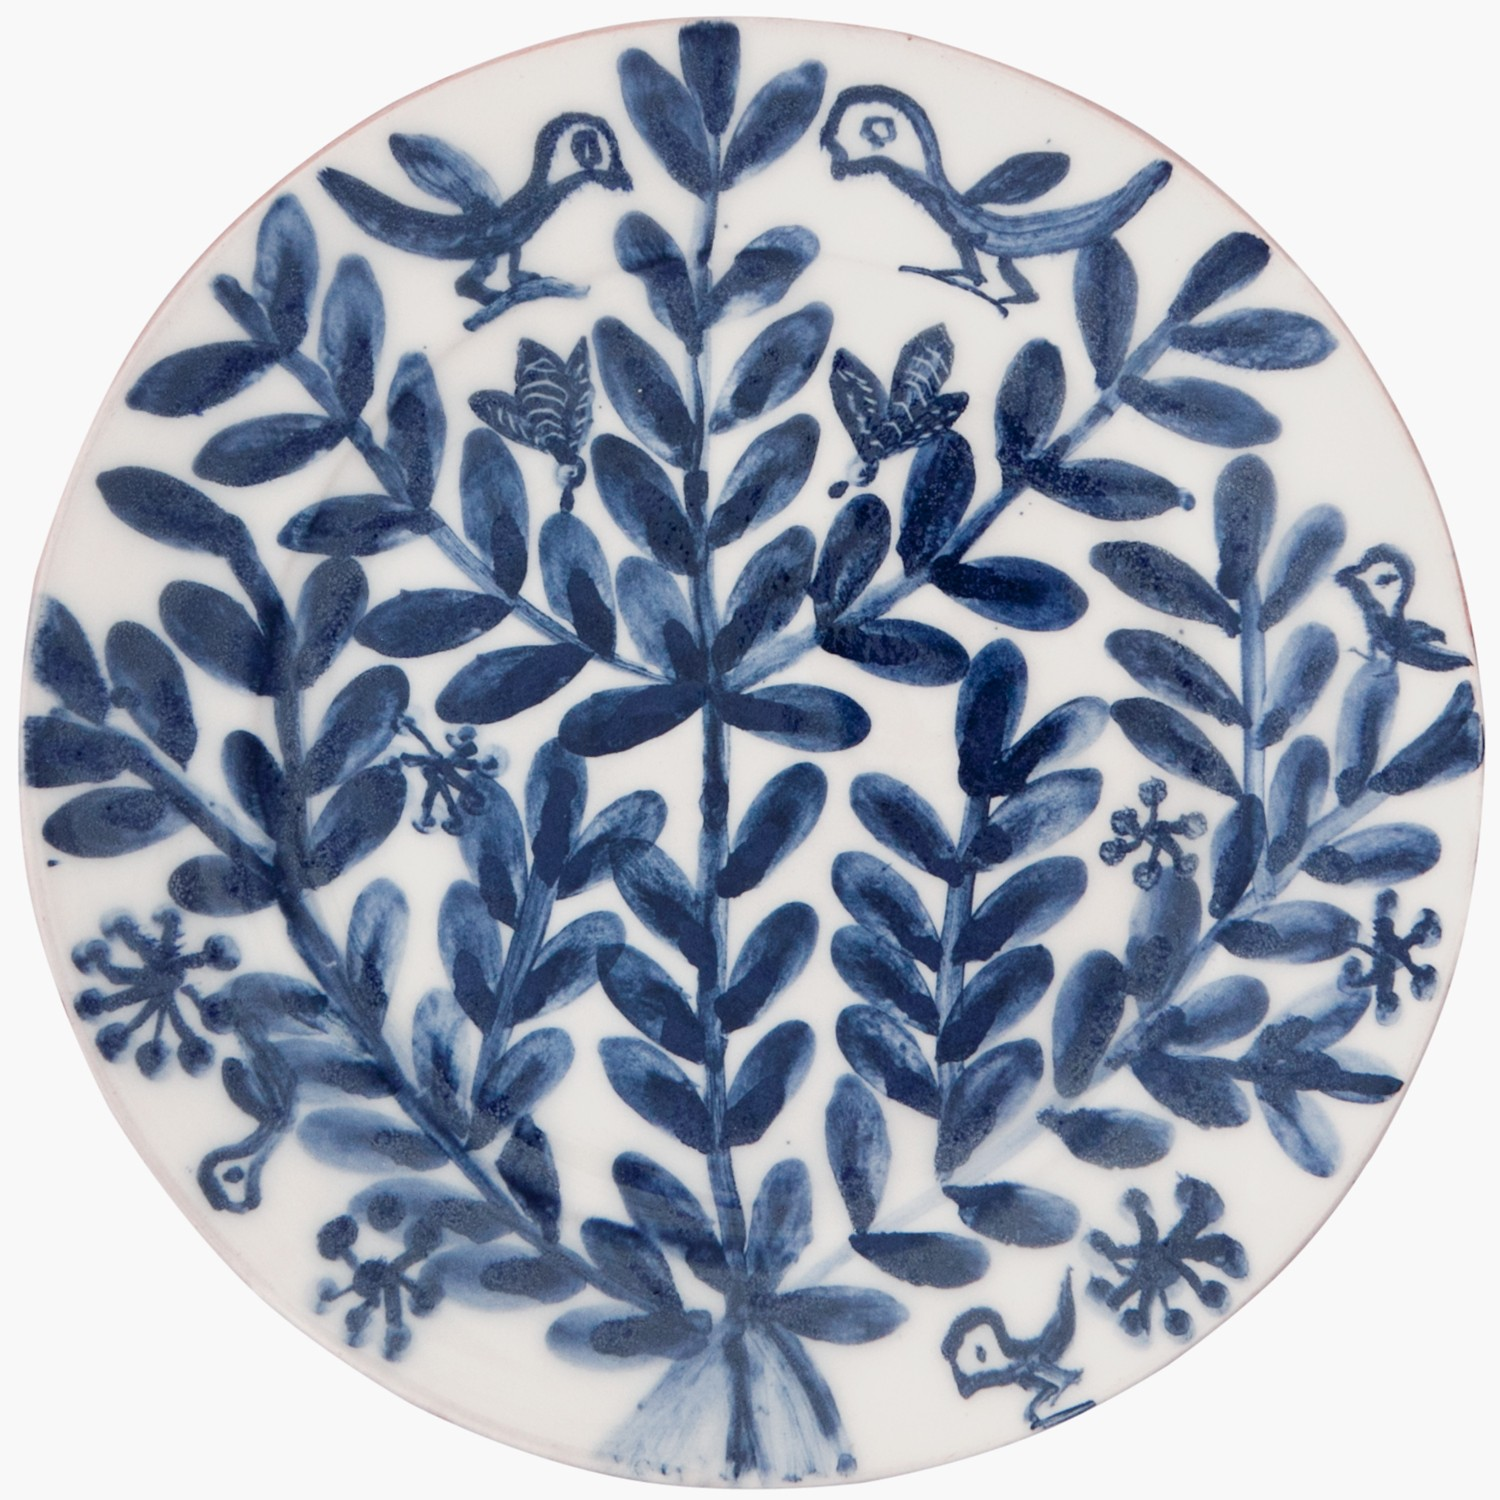 Decorative_Blue_and_White_Plates-Birds_Bees_Flowers-1